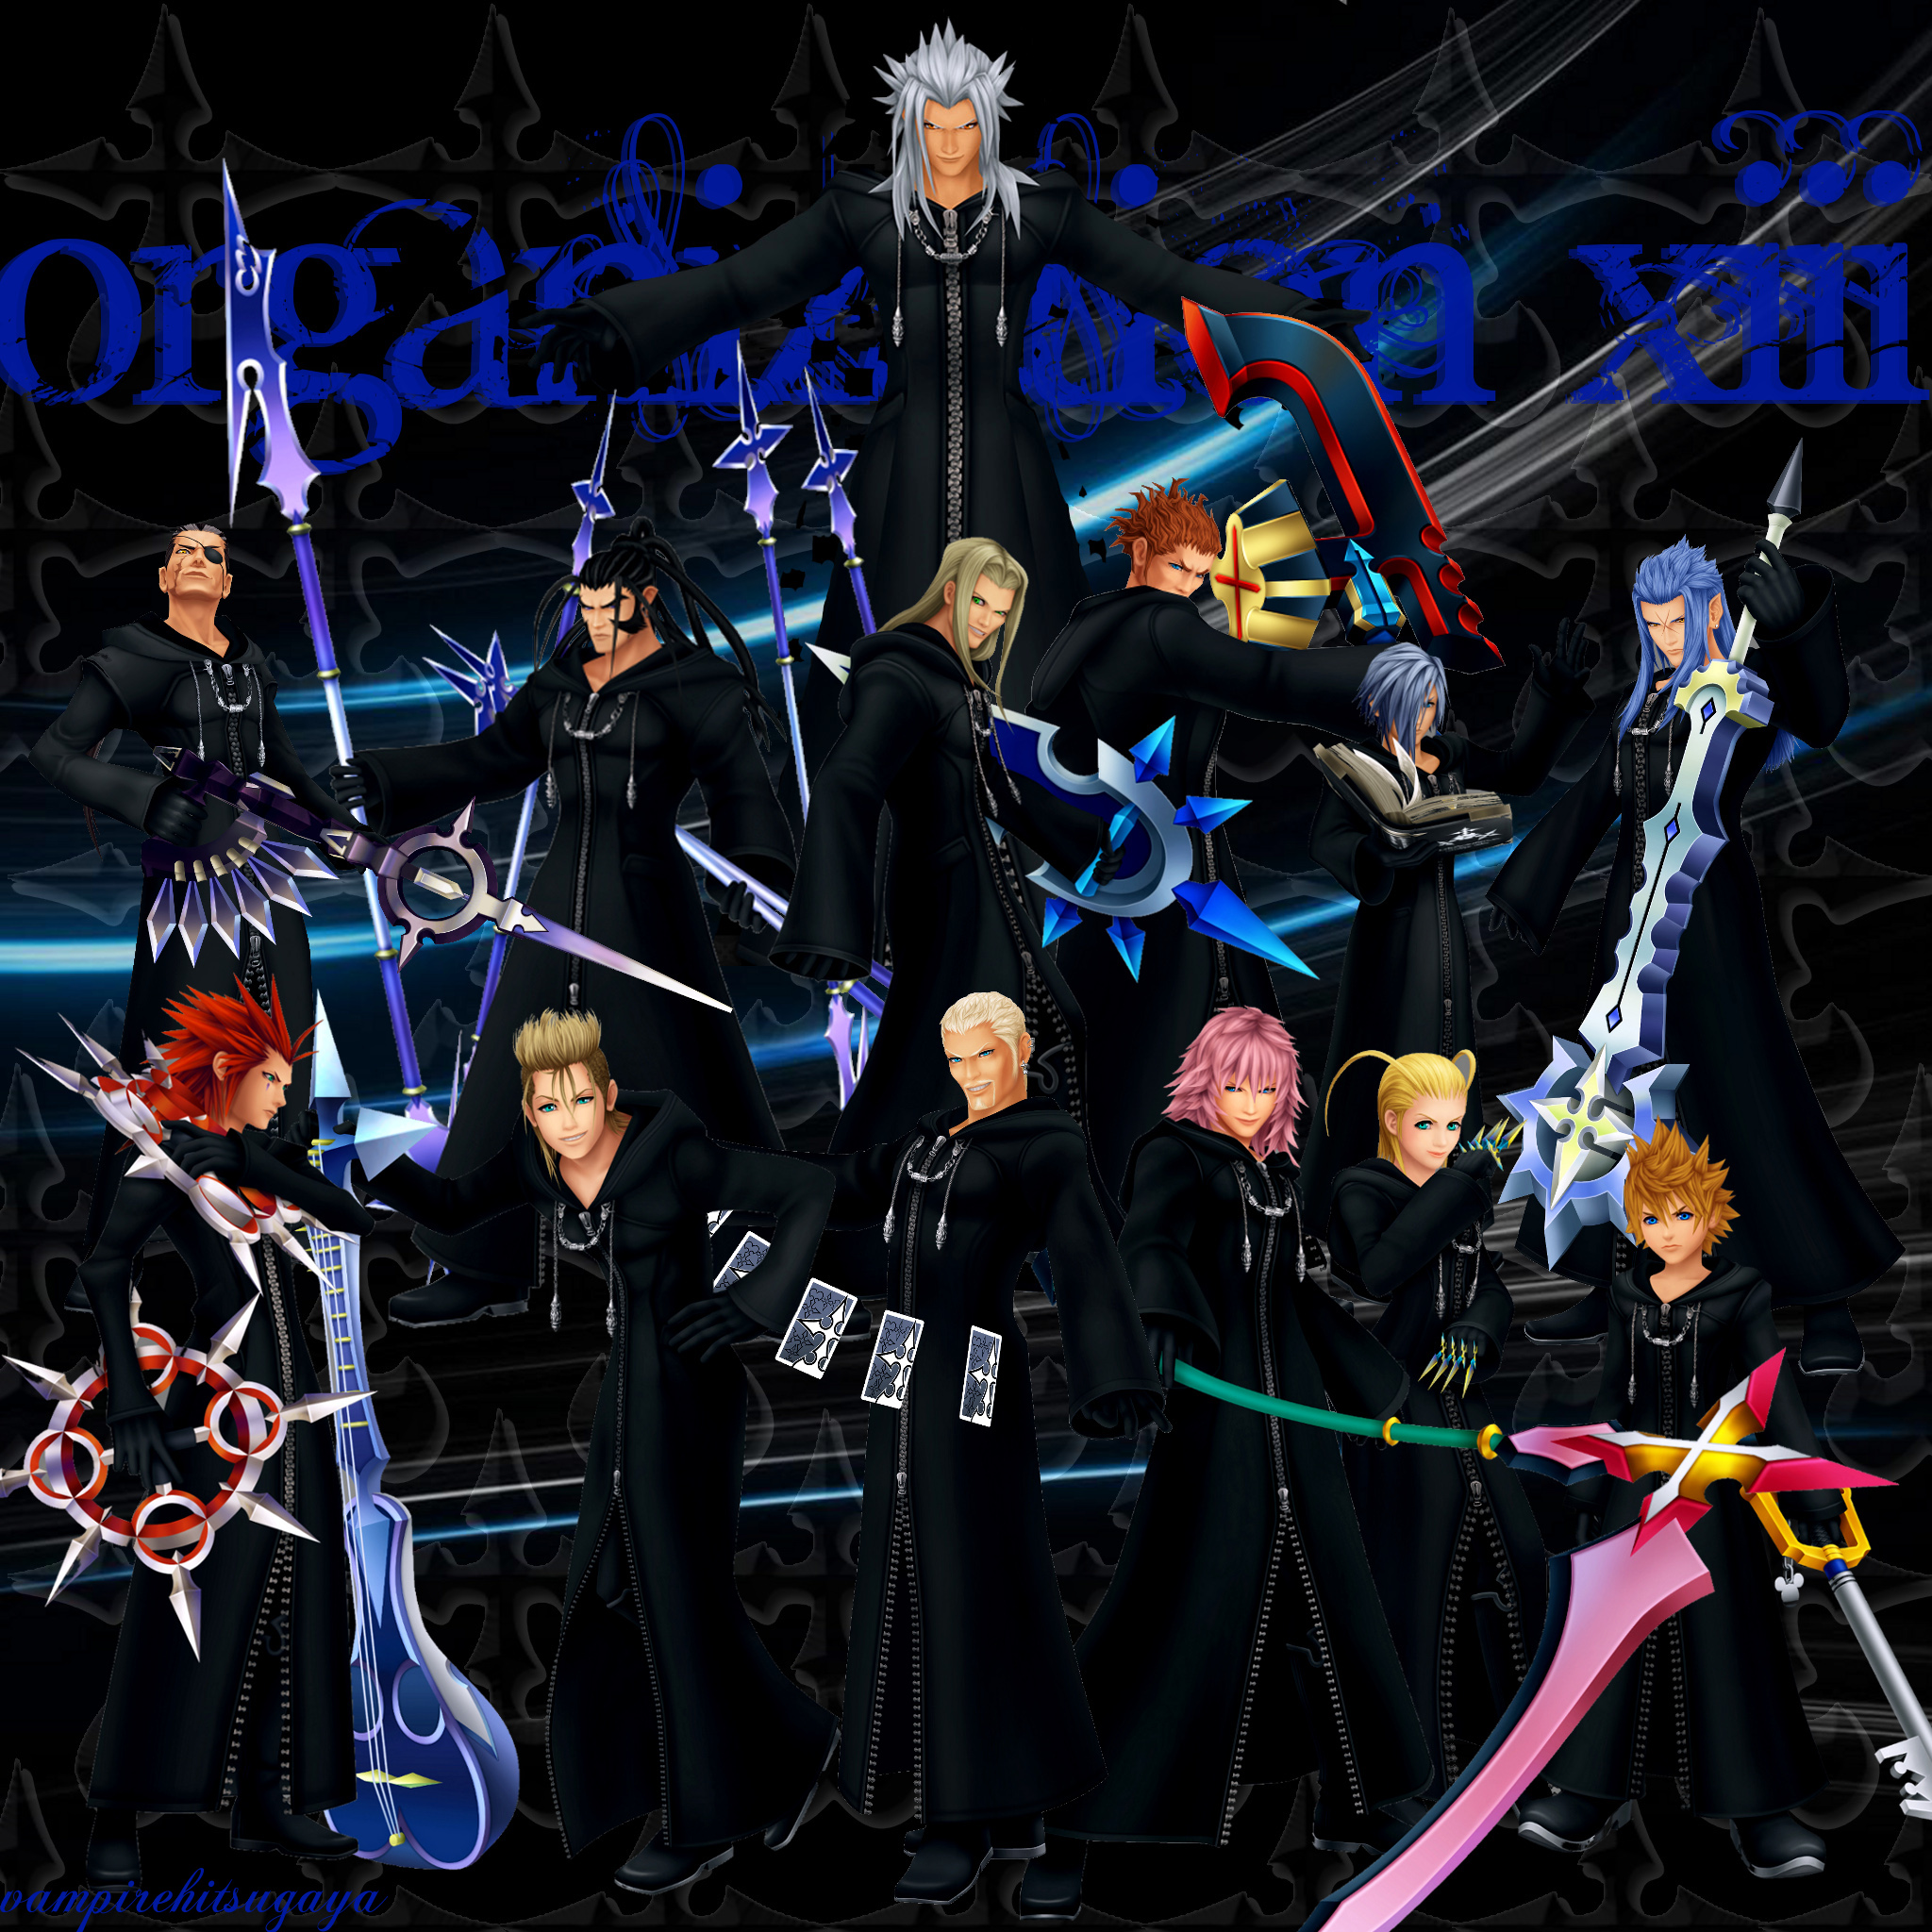 Kingdom Hearts Iphone Wallpaper: Organization XIII By Vampirehitsugaya